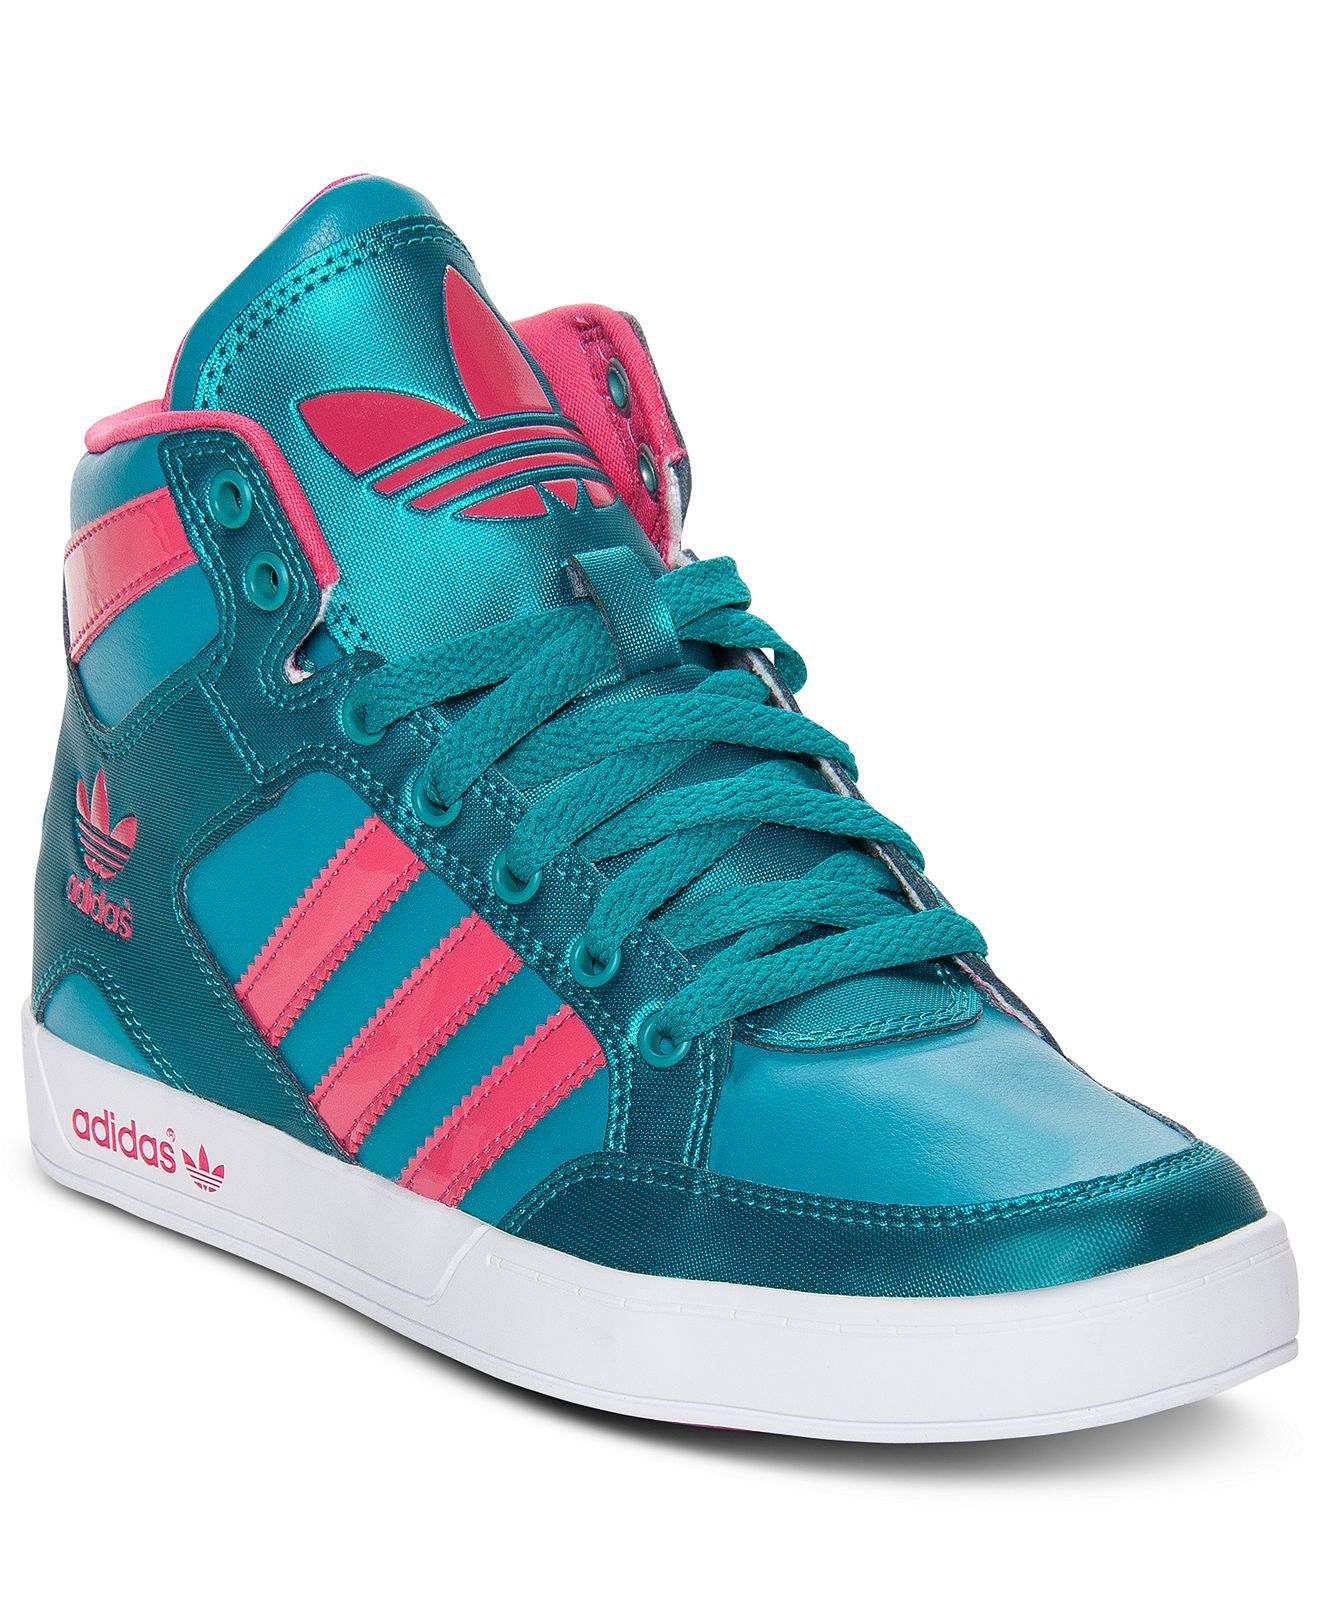 adidas Women's Shoes, Hardcourt High Top Casual Sneakers